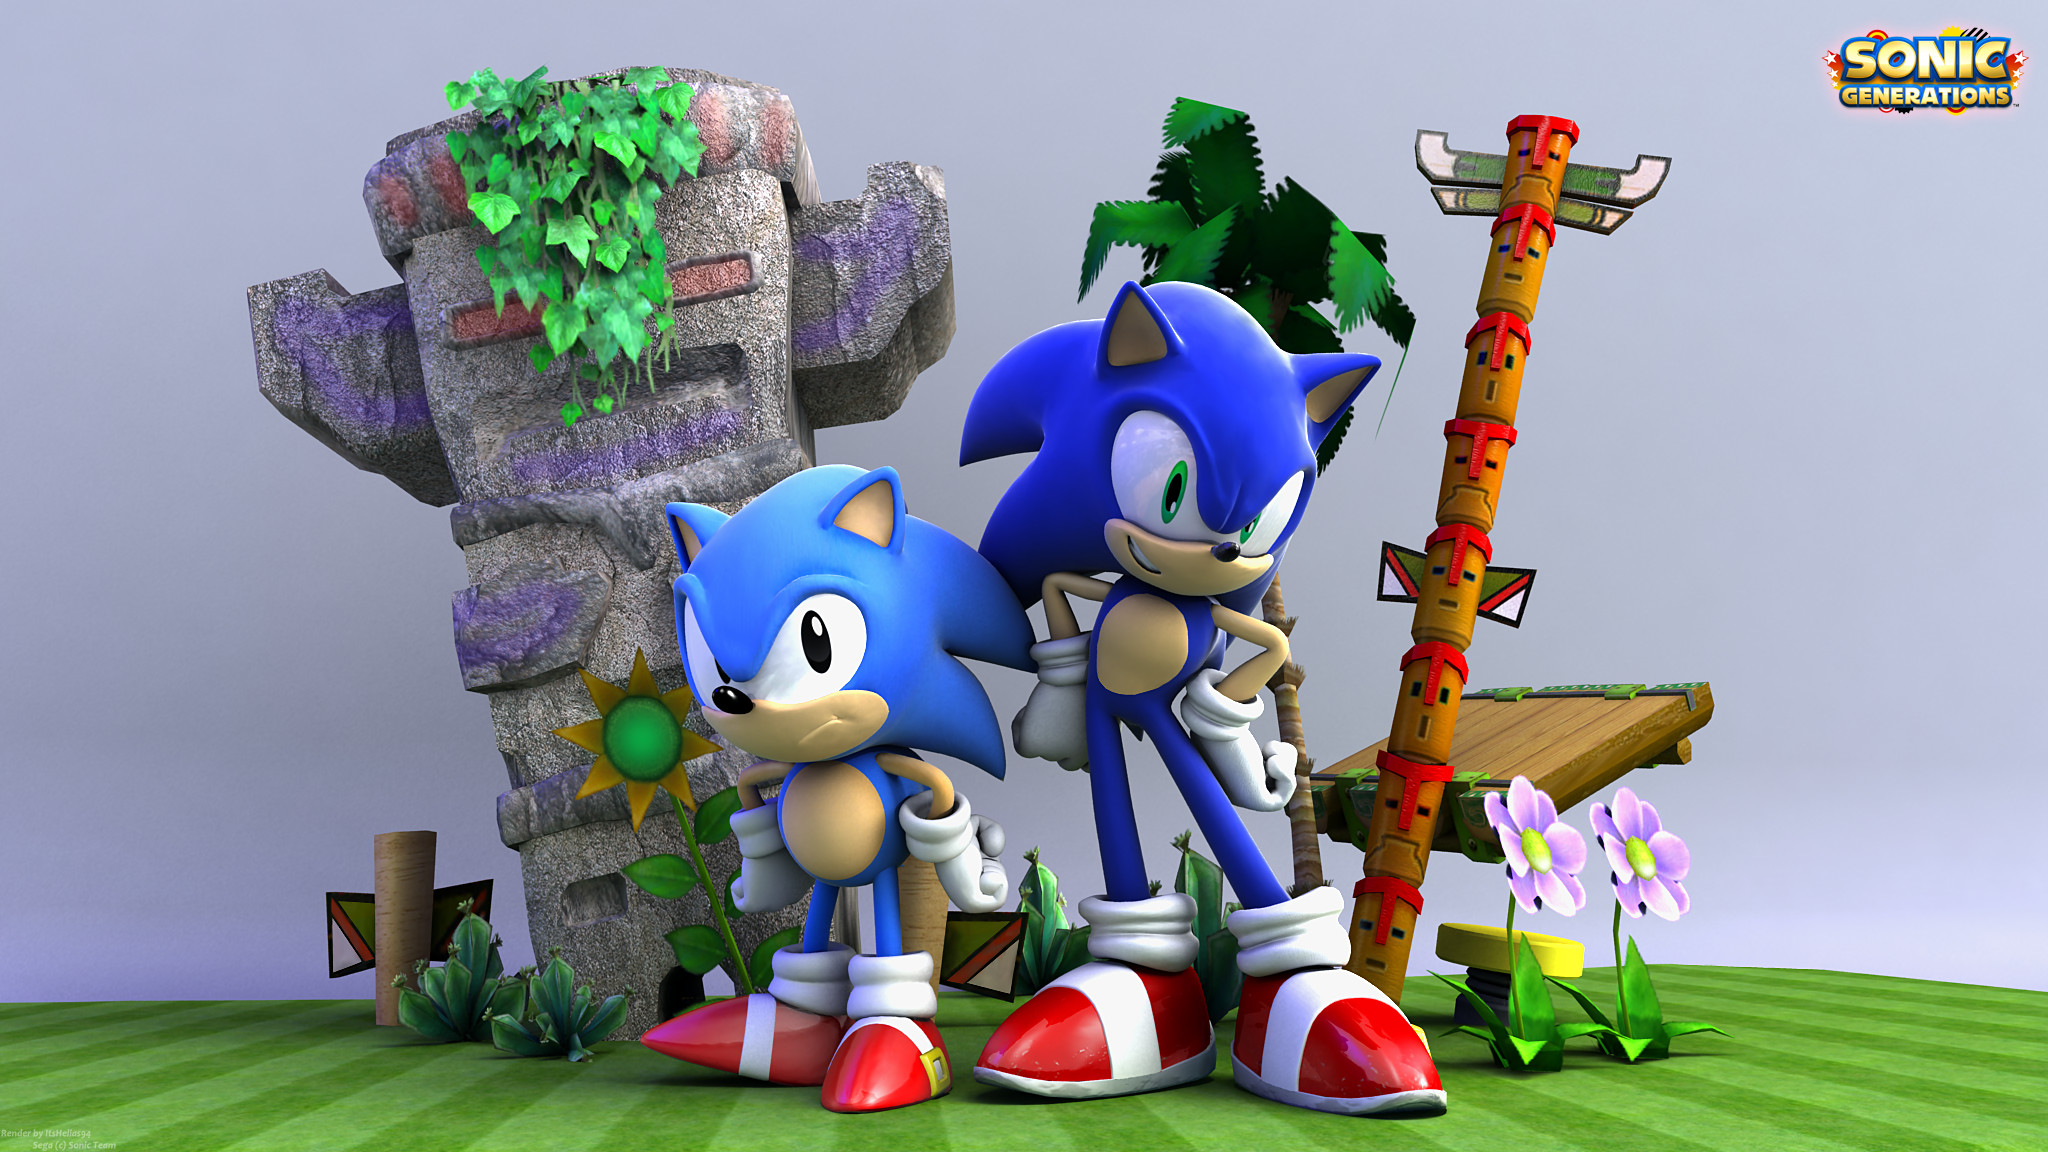 2048x1152 Super Sonic Generations Wallpaper - HD Wallpapers